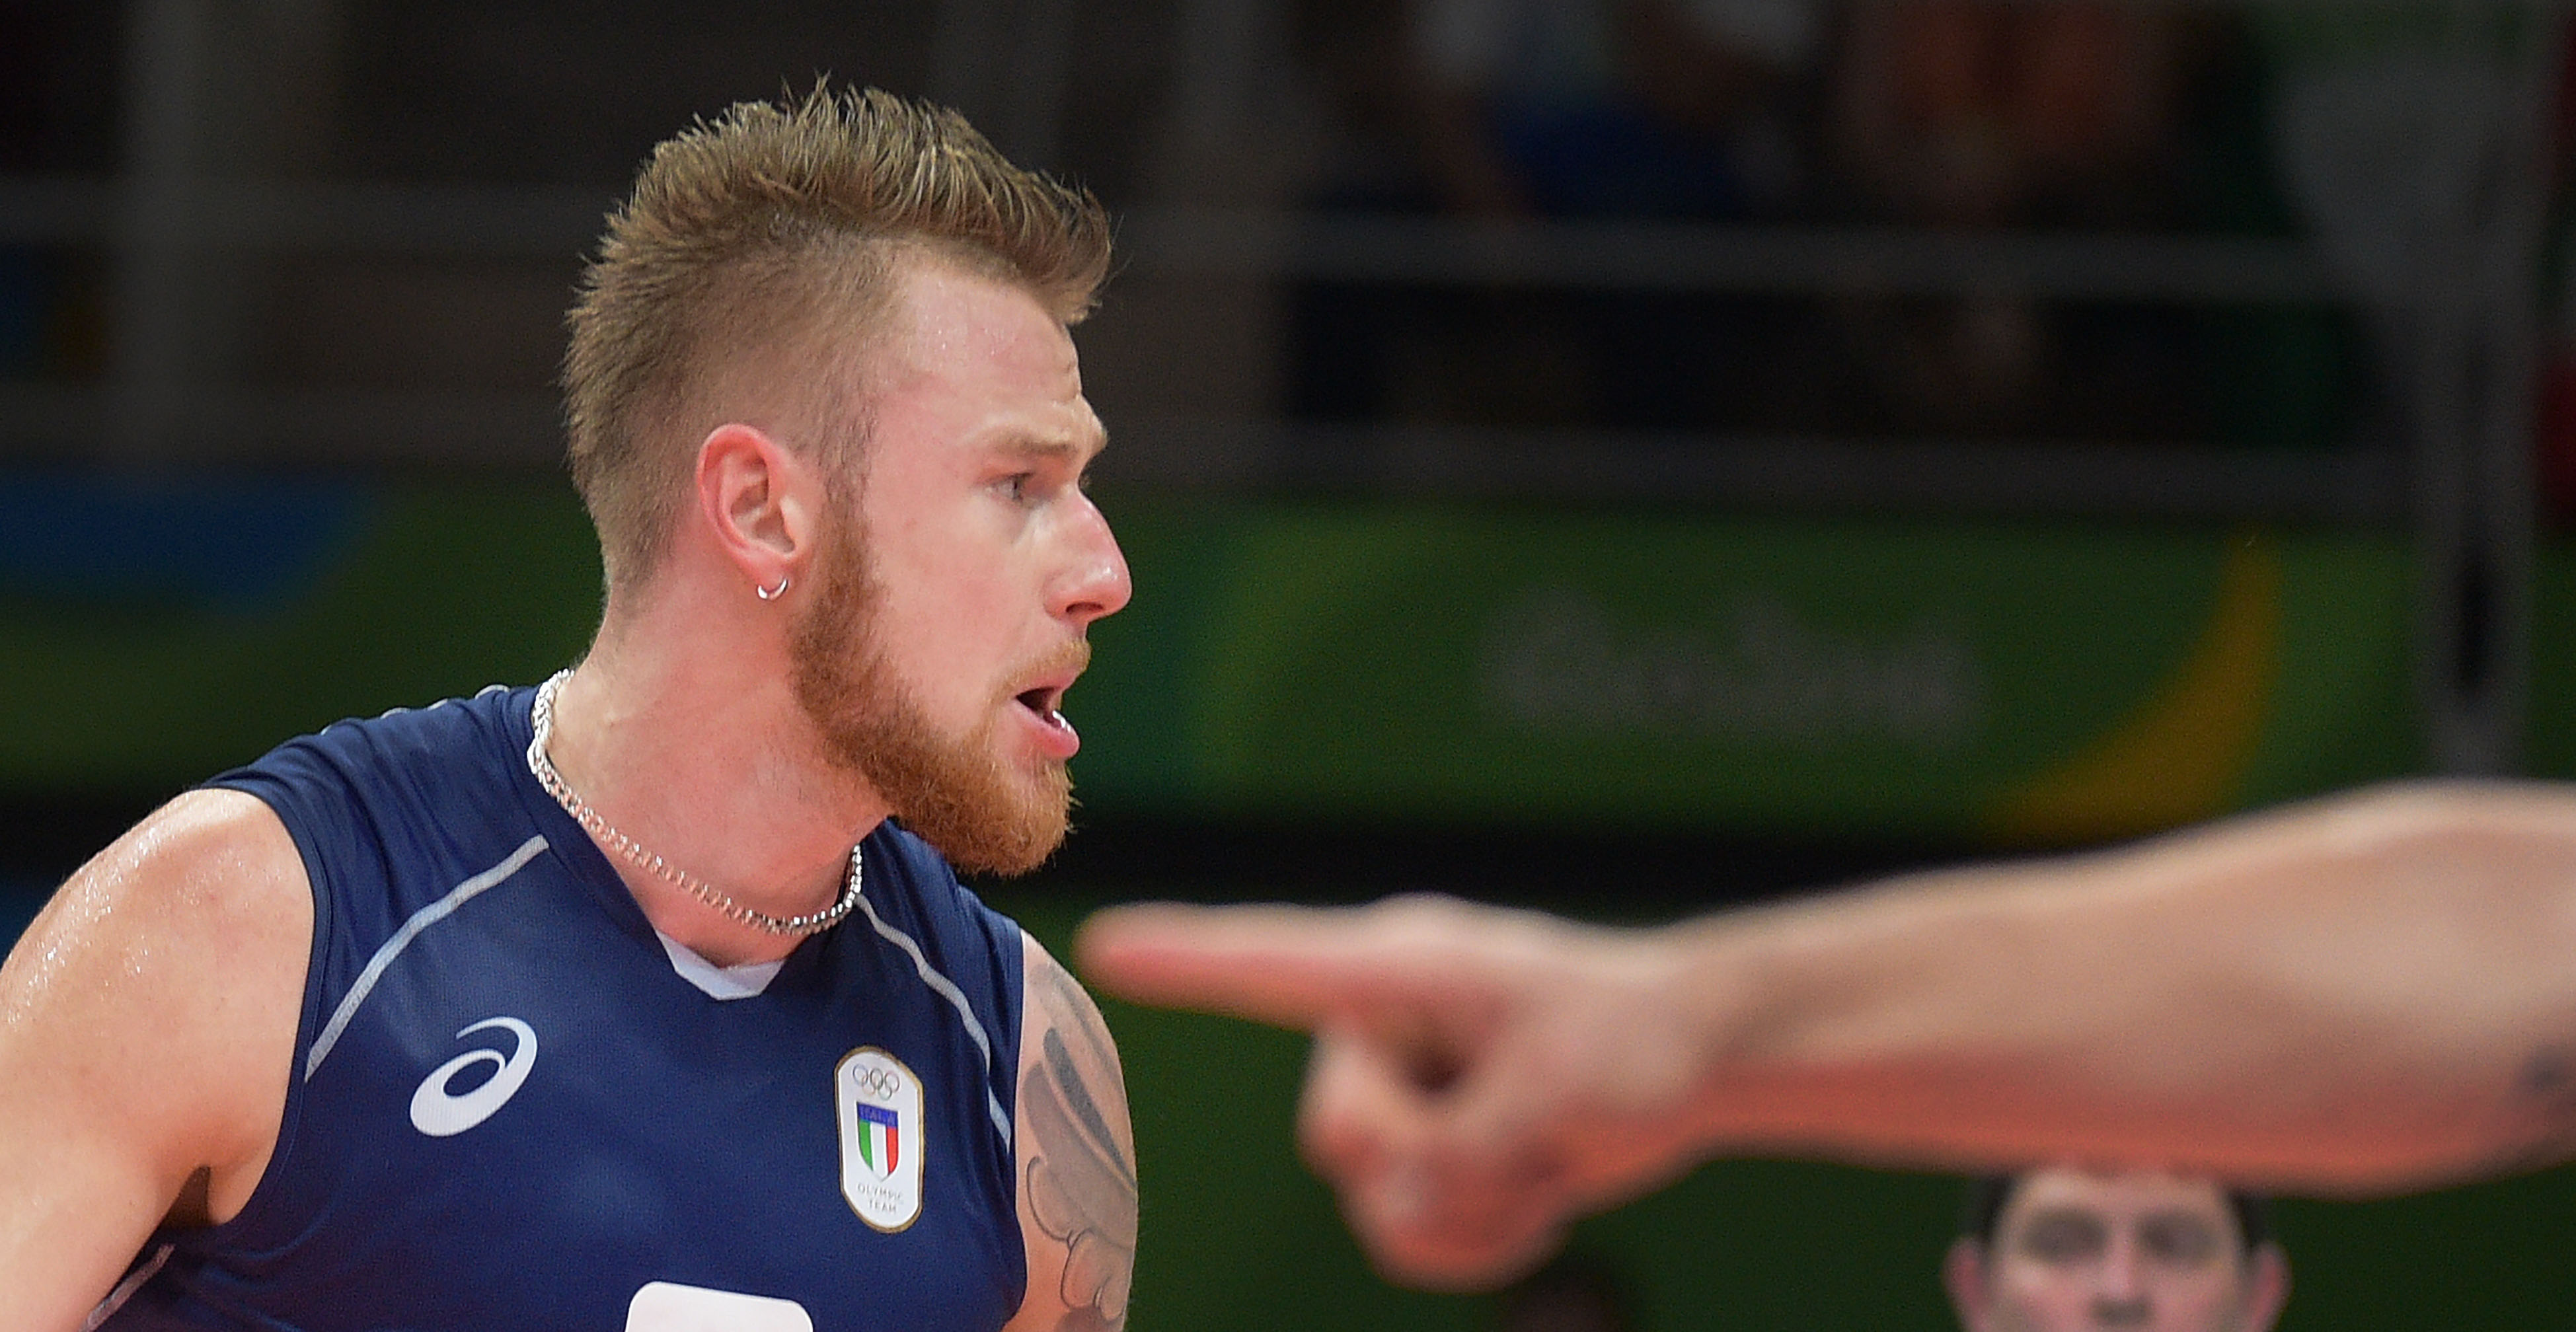 zaytsev - photo #27